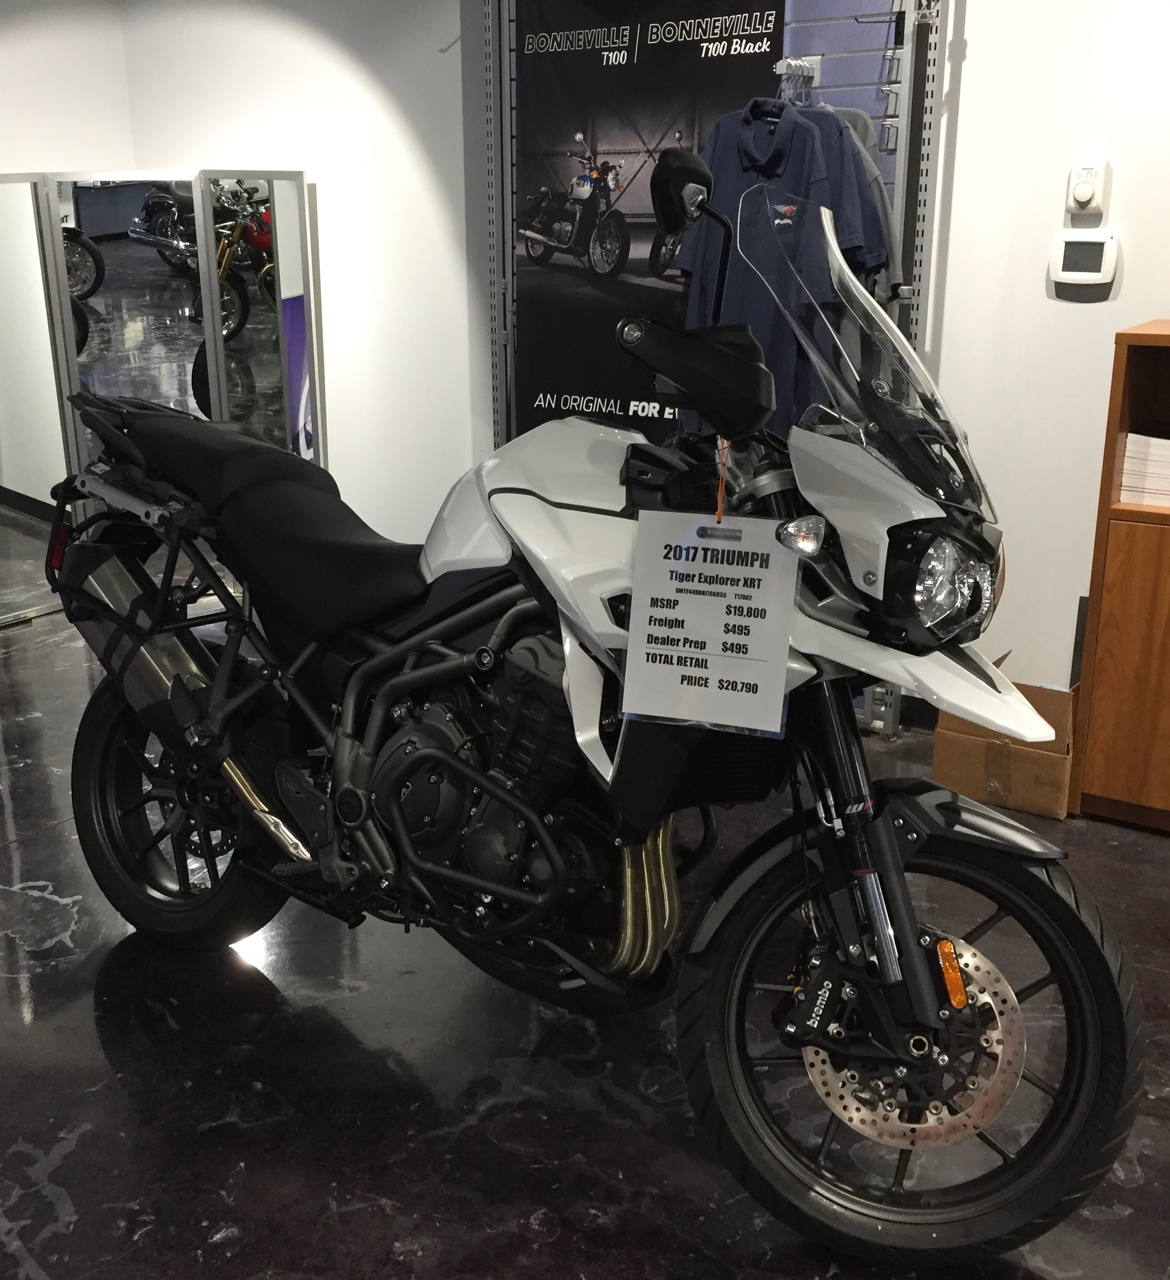 Triumph Tiger Explorer XRT @ Motorcycles of Charlotte